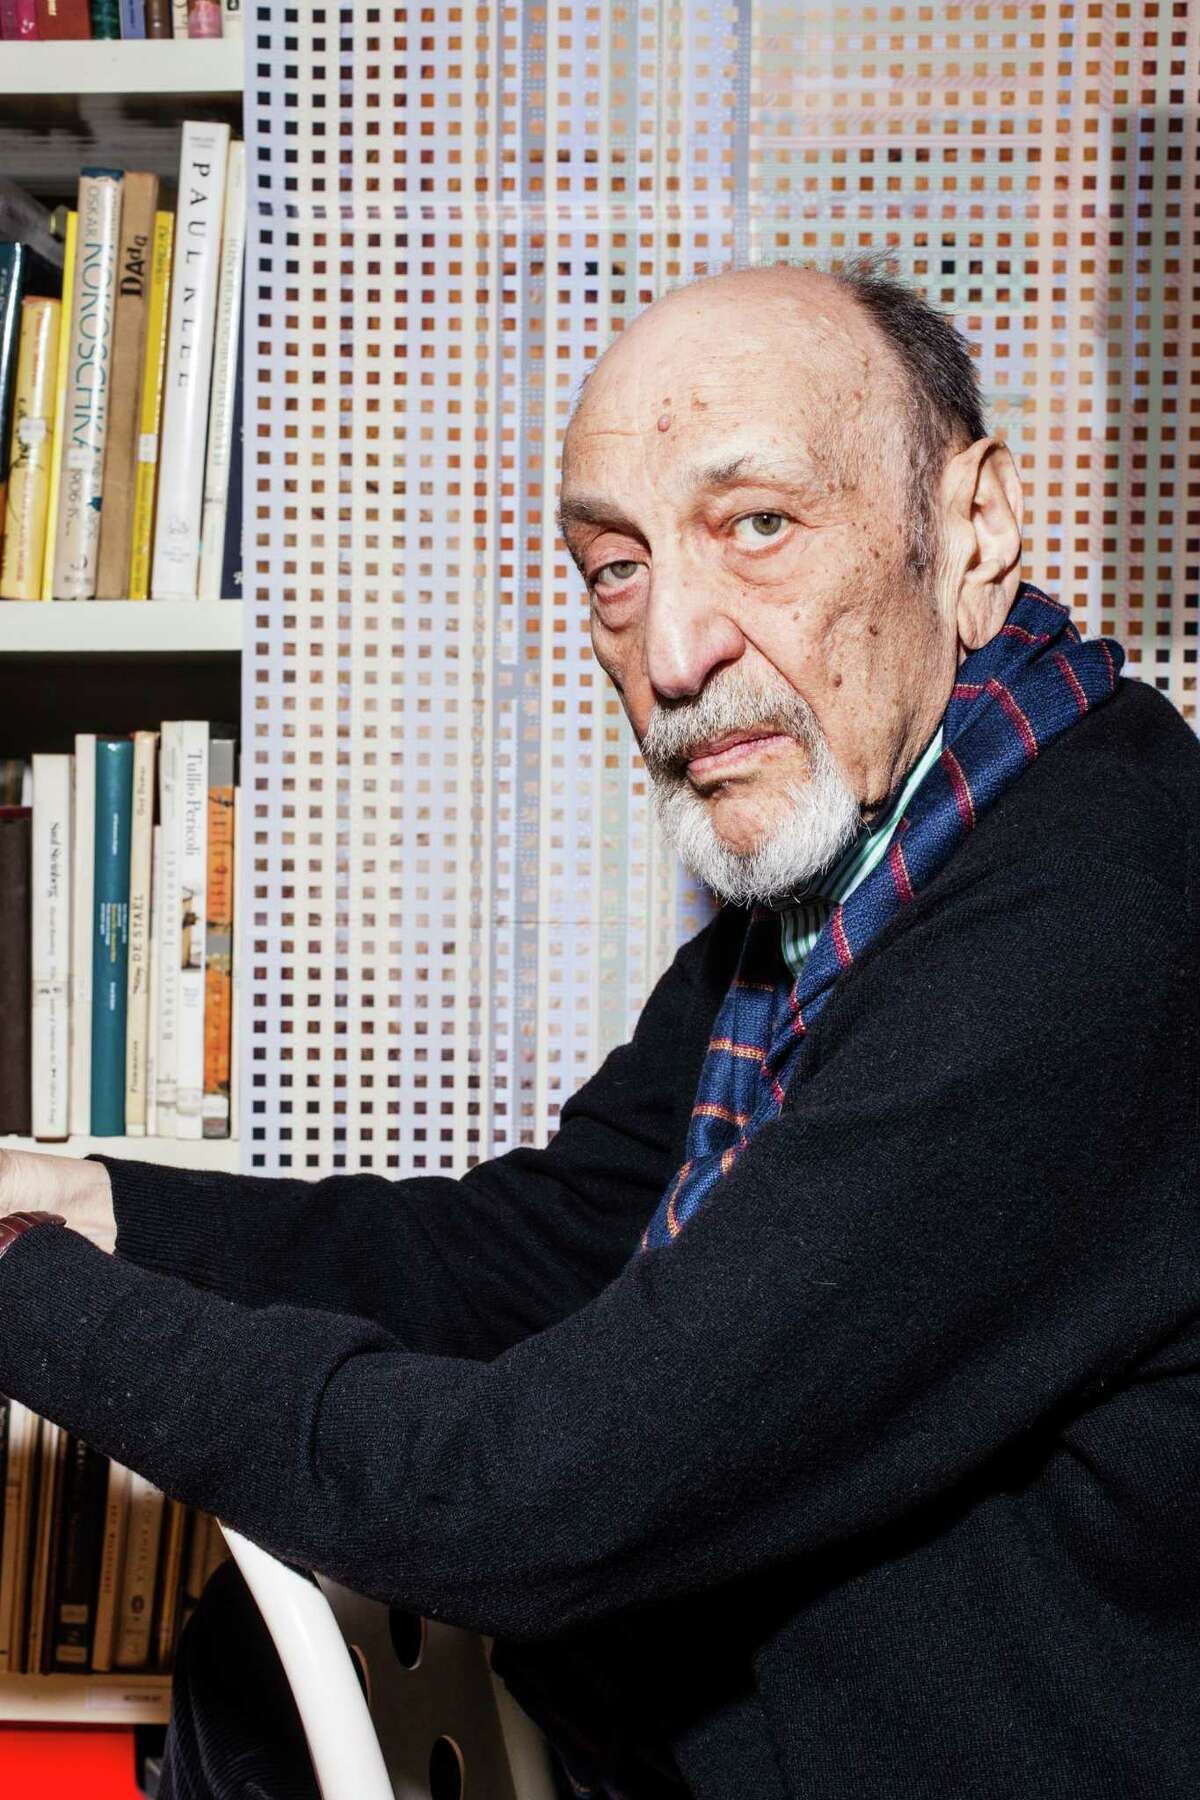 FILE -- Milton Glaser in his studio in Manhattan, Nov. 16, 2012. At the time of his death in June 2020, Glaser was working on a graphical treatment of the word